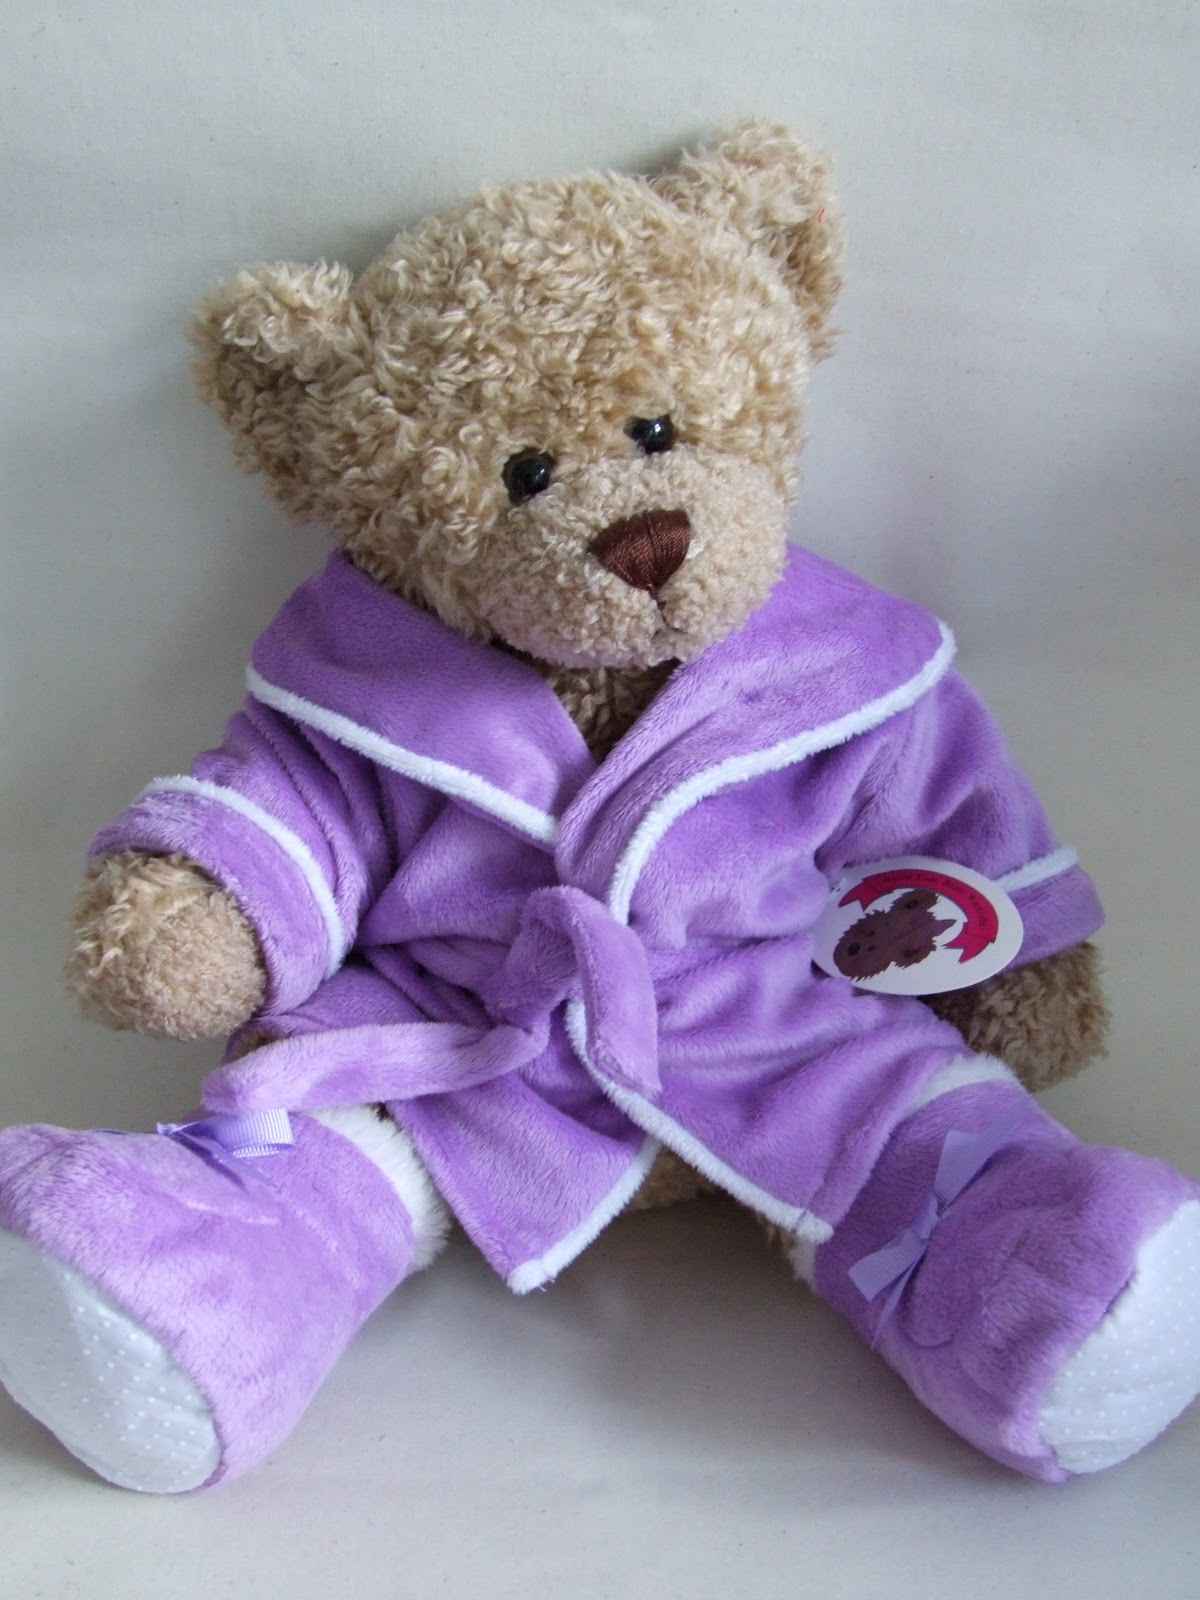 How to Make a Teddy Bear Birth Certificate pics